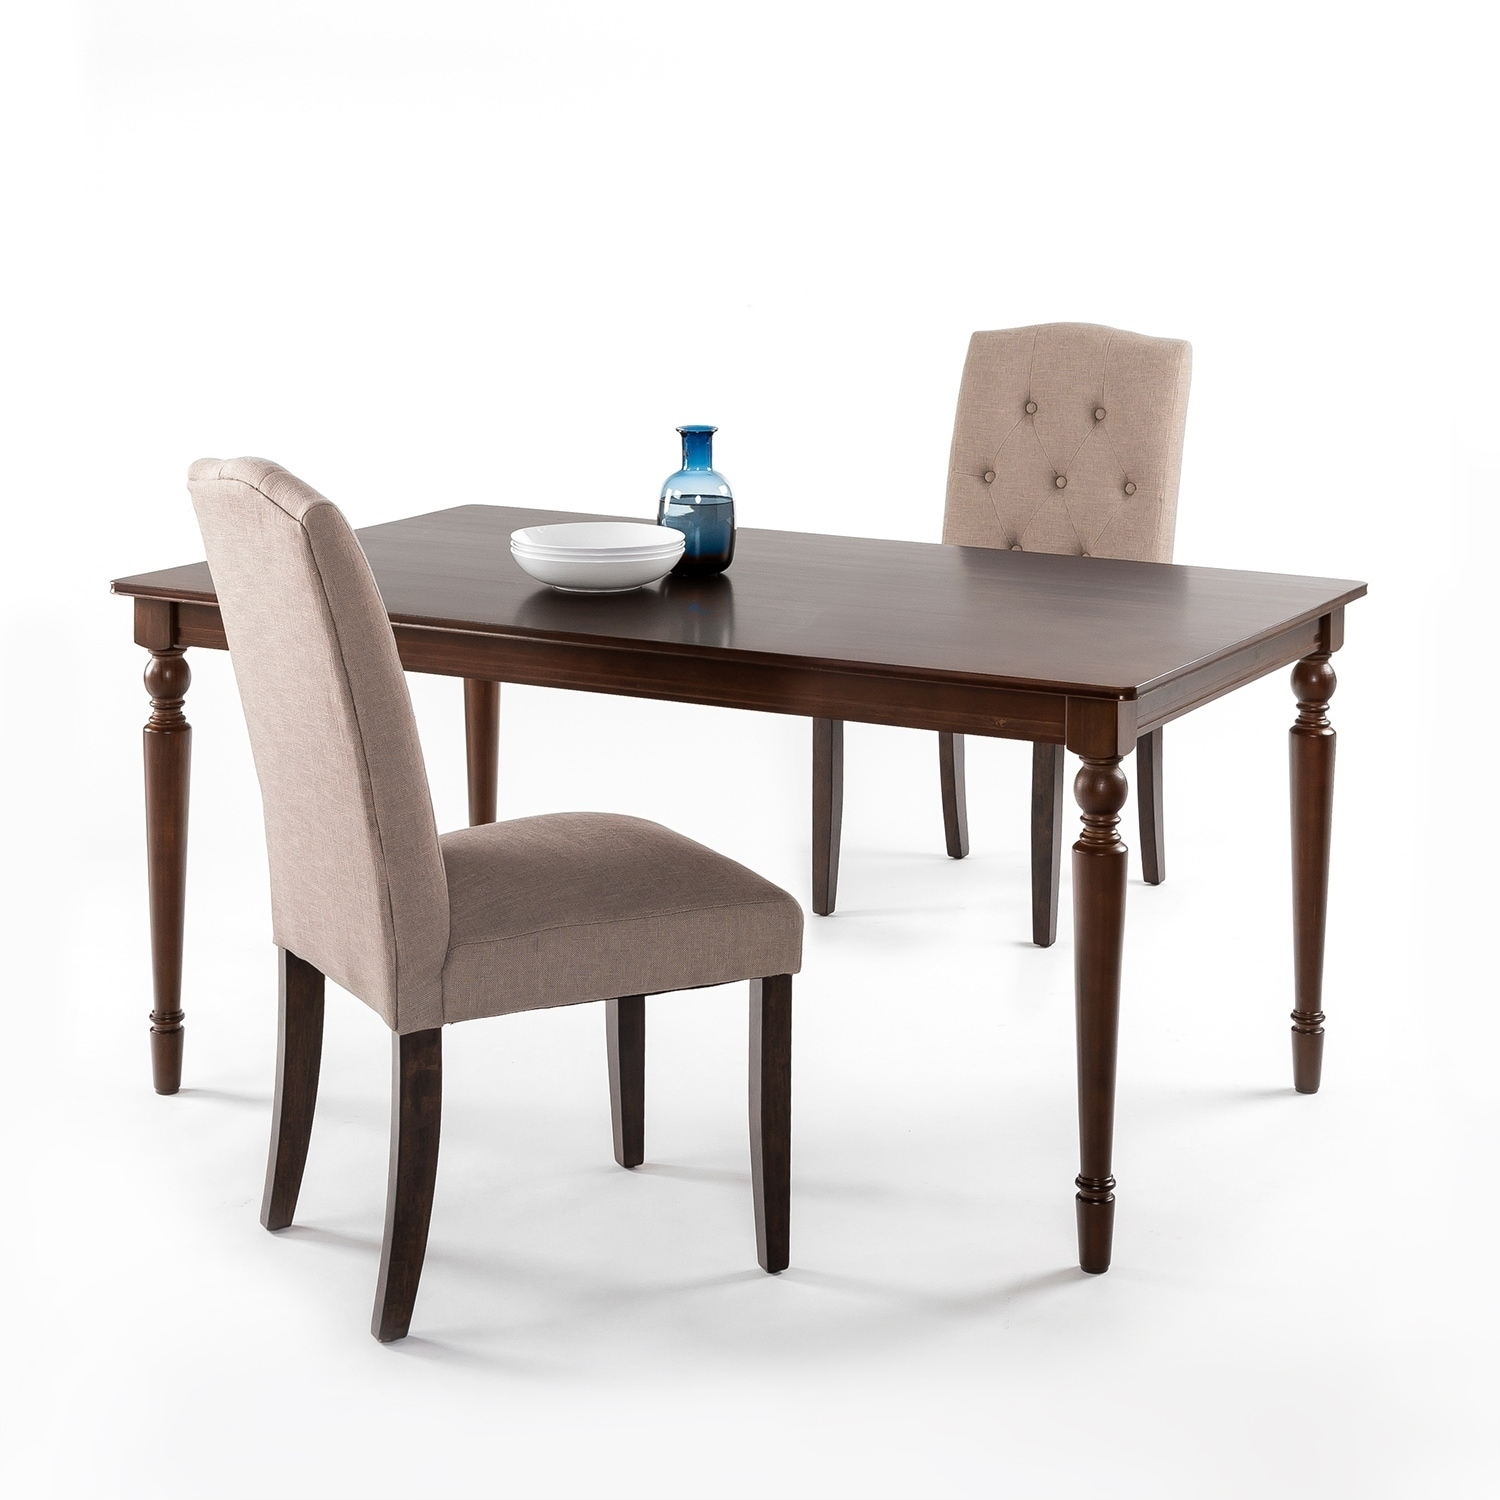 Zinus Bordeaux Dining Table 6 Persons